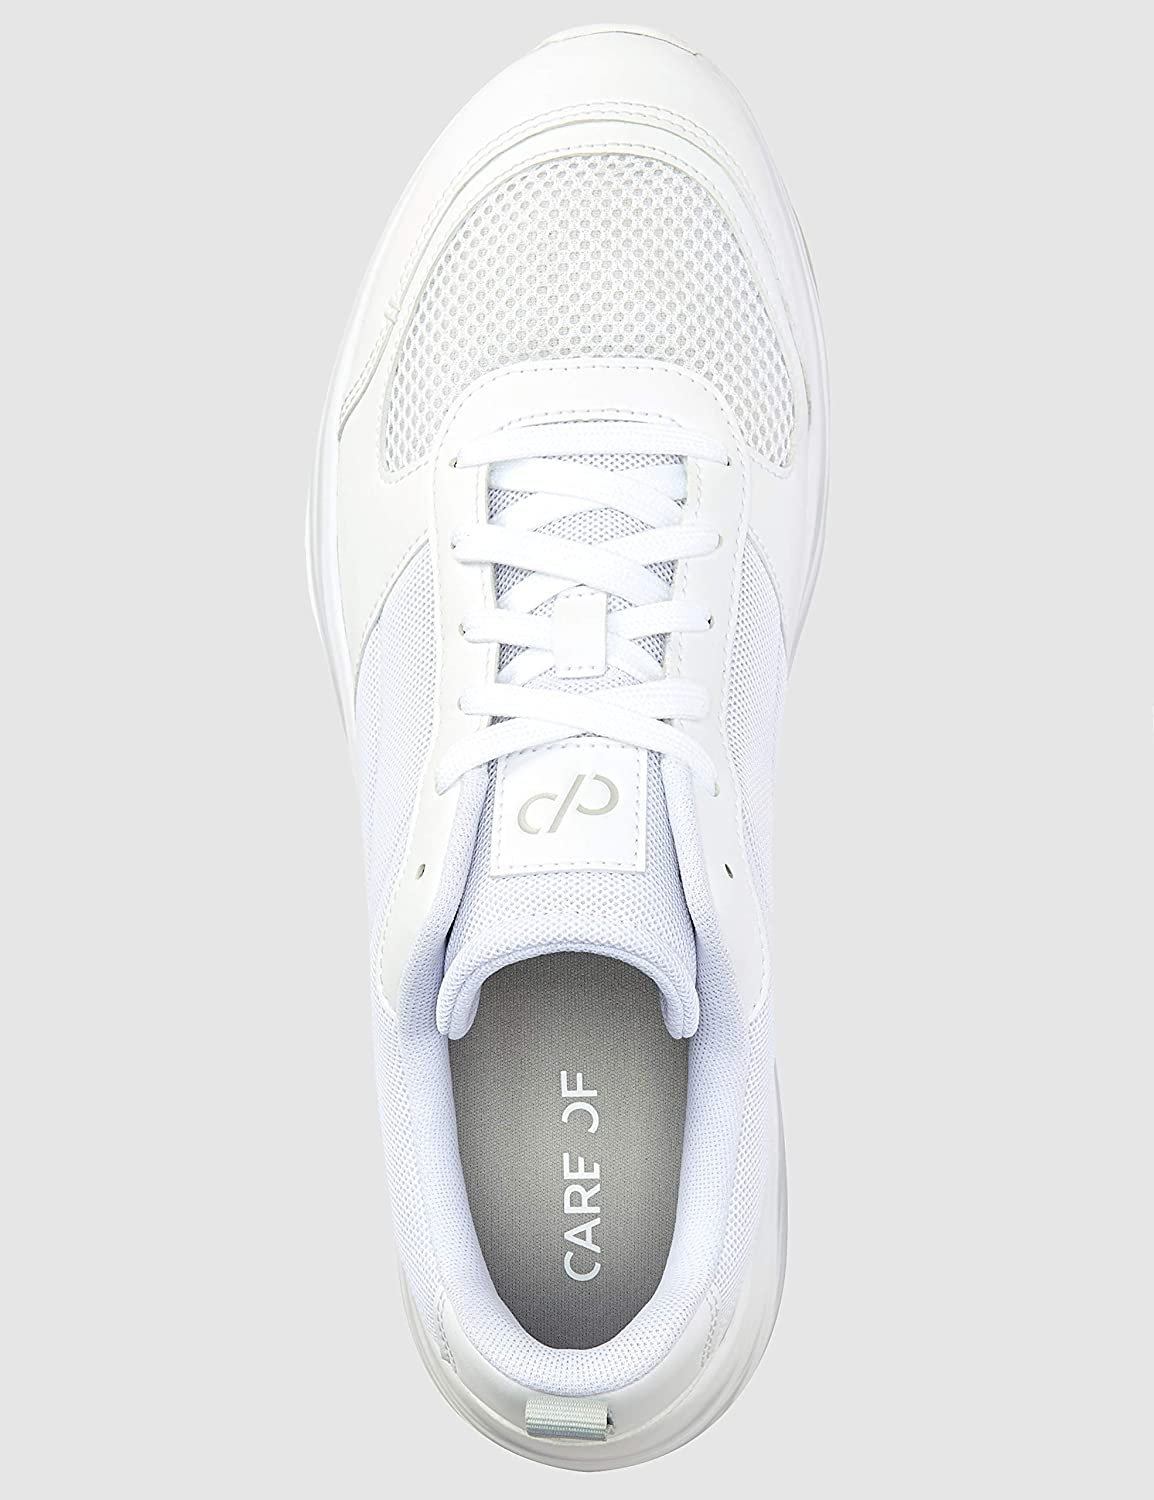 Care Of By Puma Baskets Basses En Maille Pour Homme Blanc White